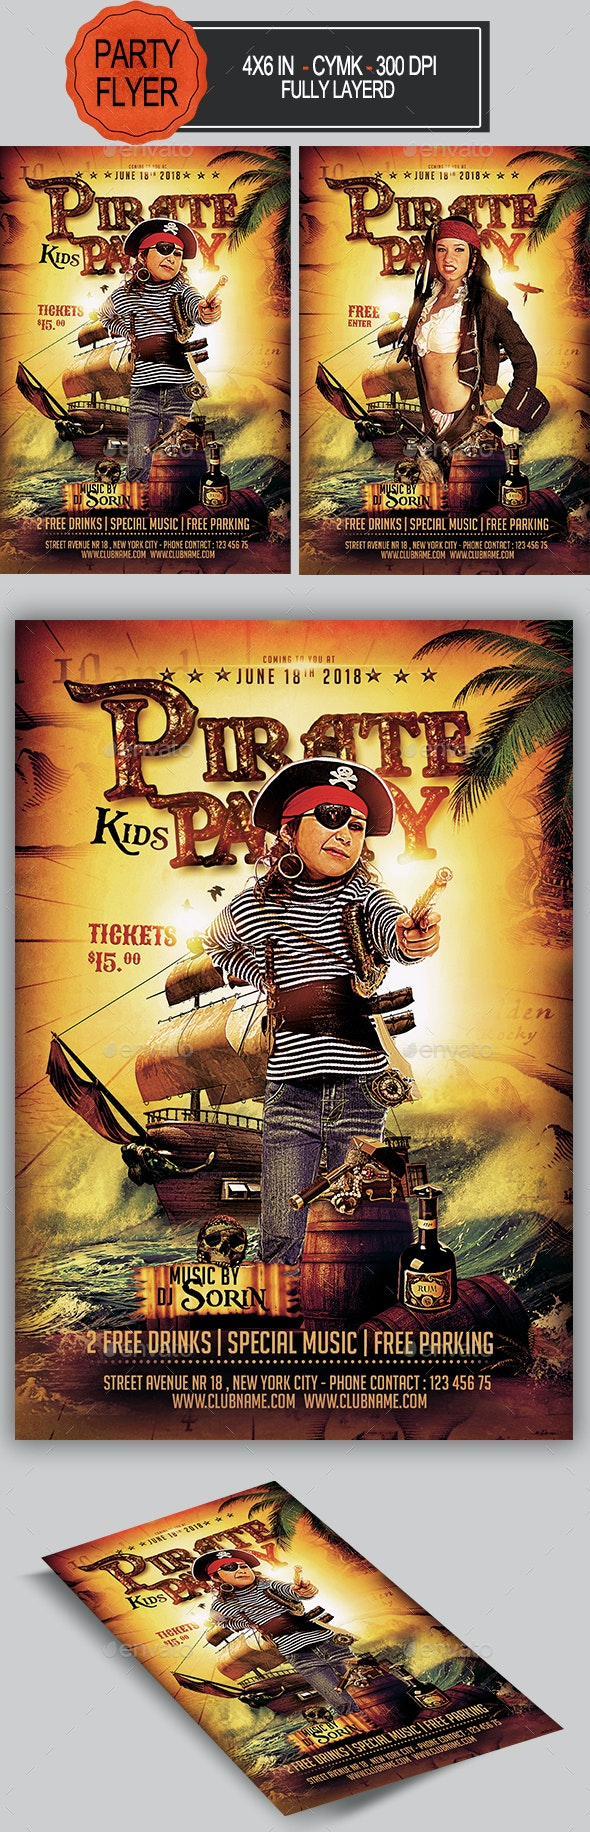 Pirate Party Flyer - Clubs & Parties Events